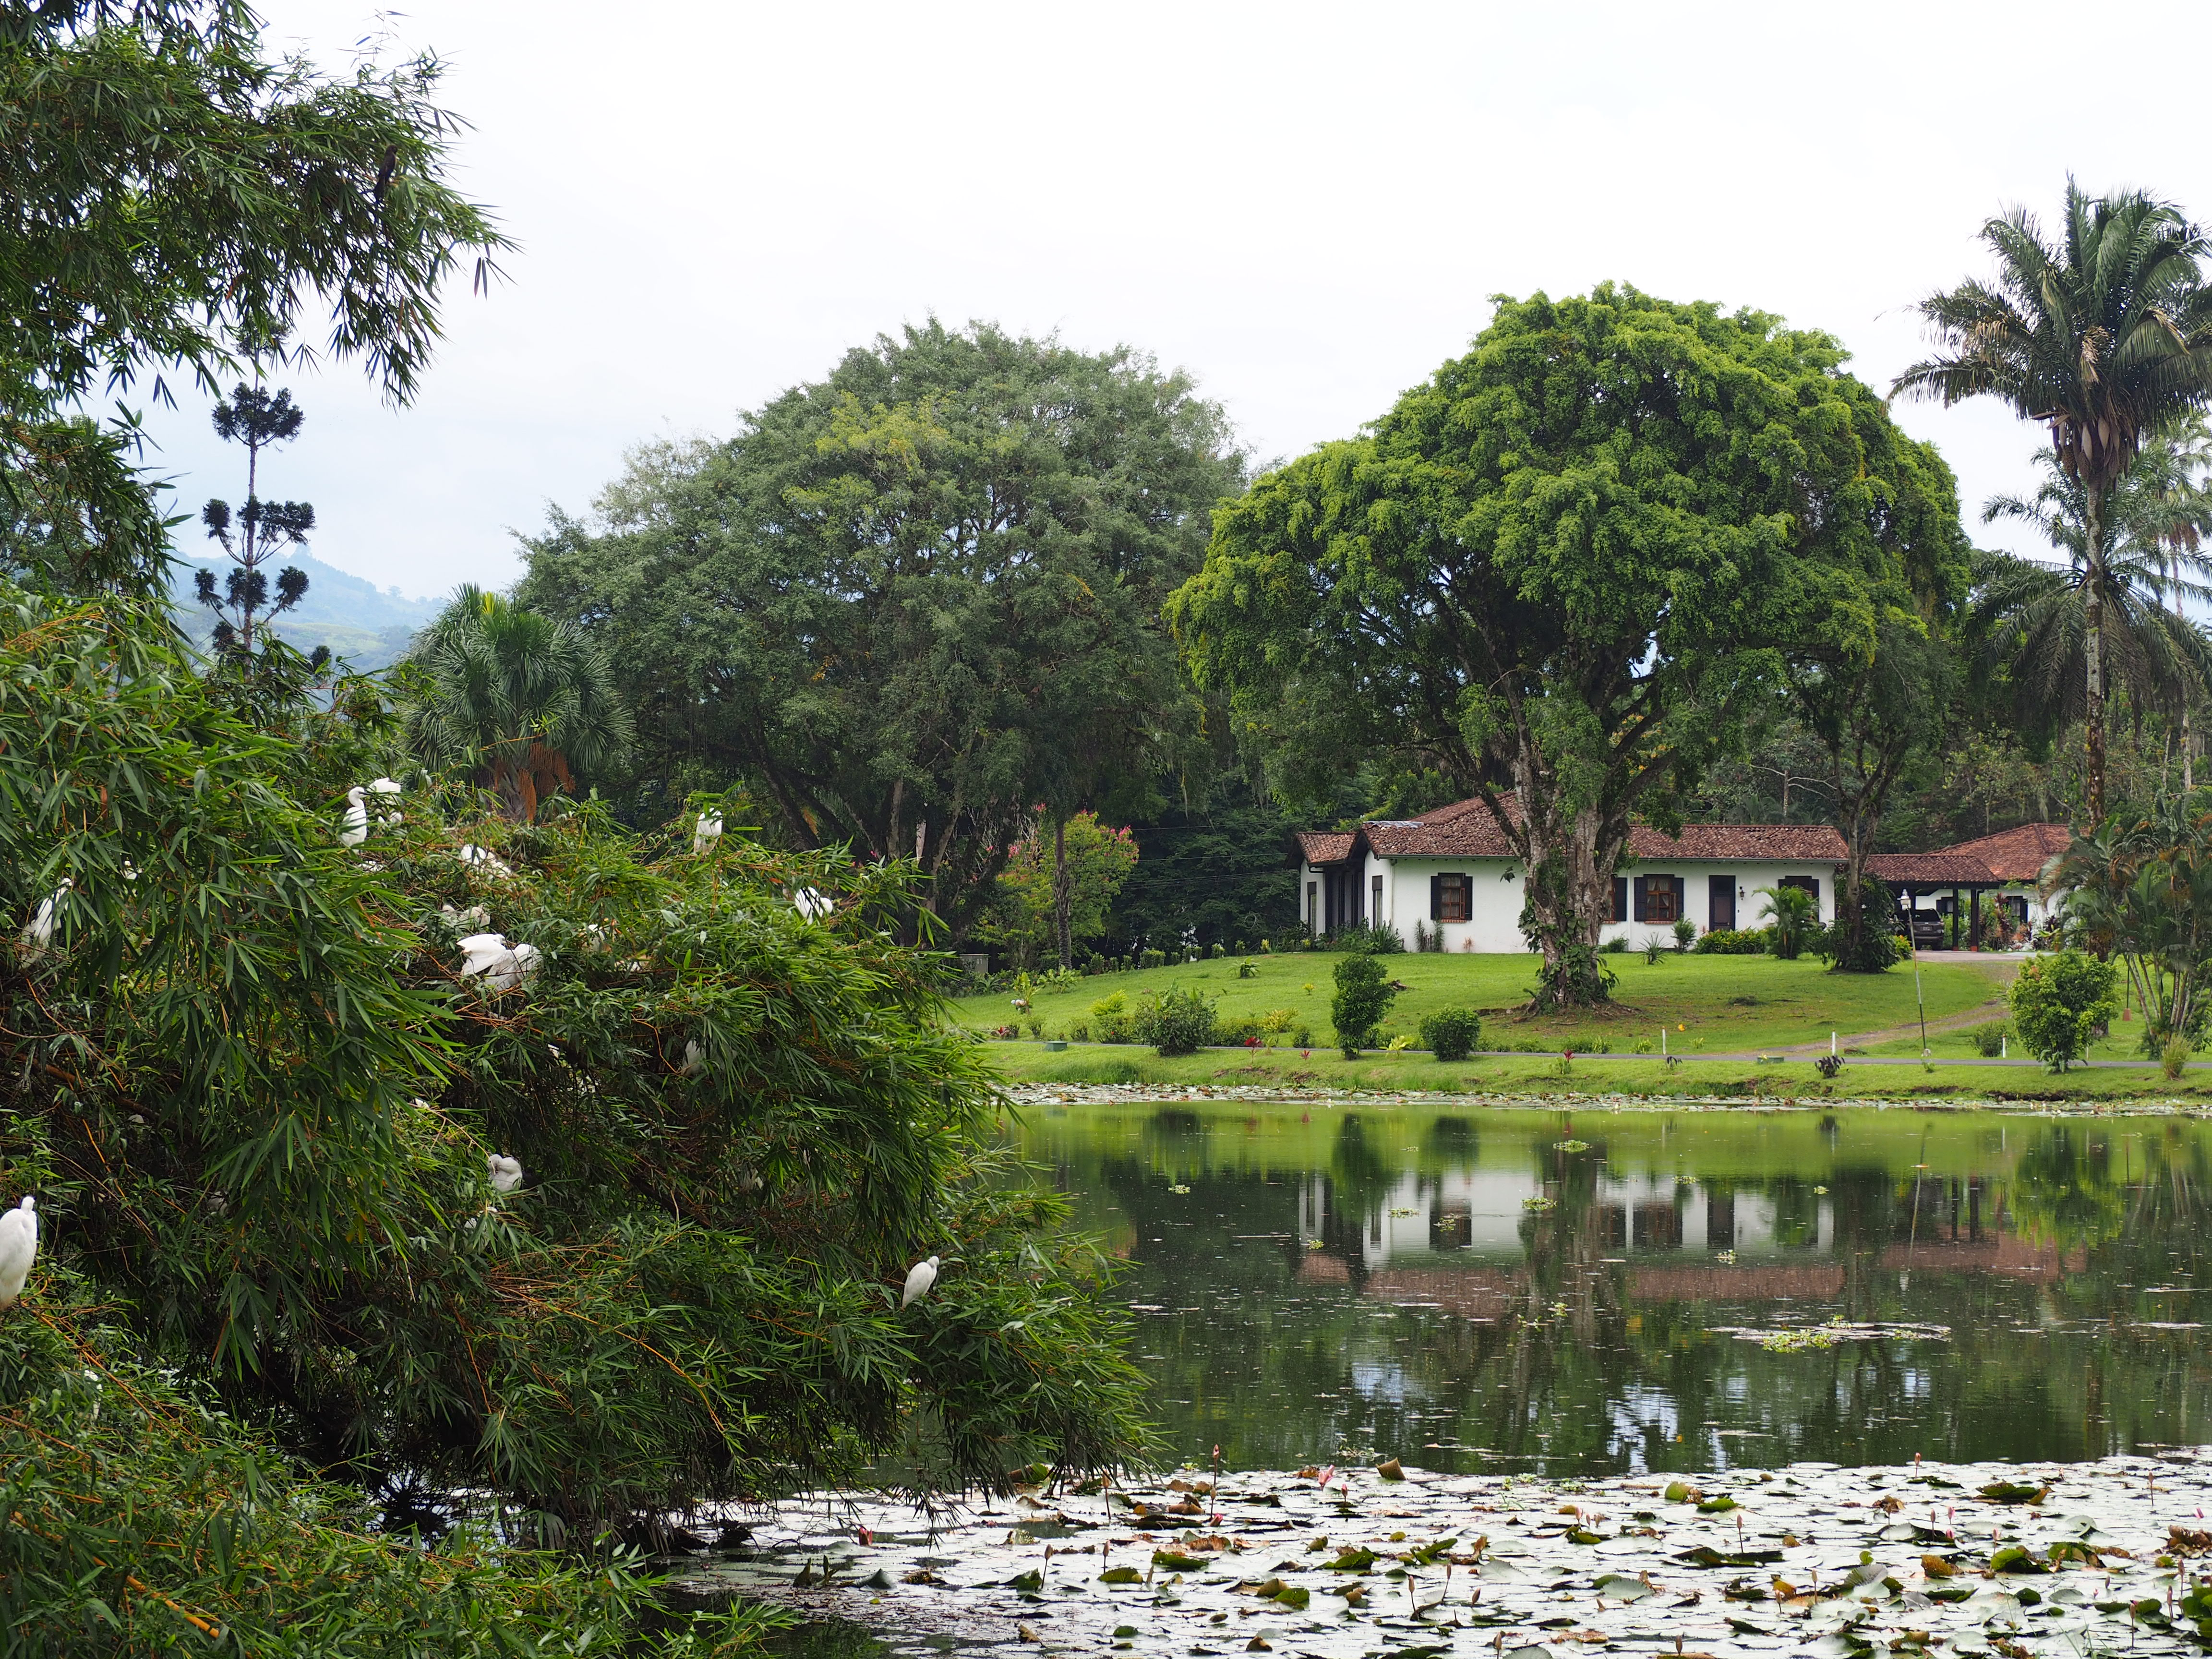 The Botanical Gardens Of Catie In Turrialba The Tiny Travelogue